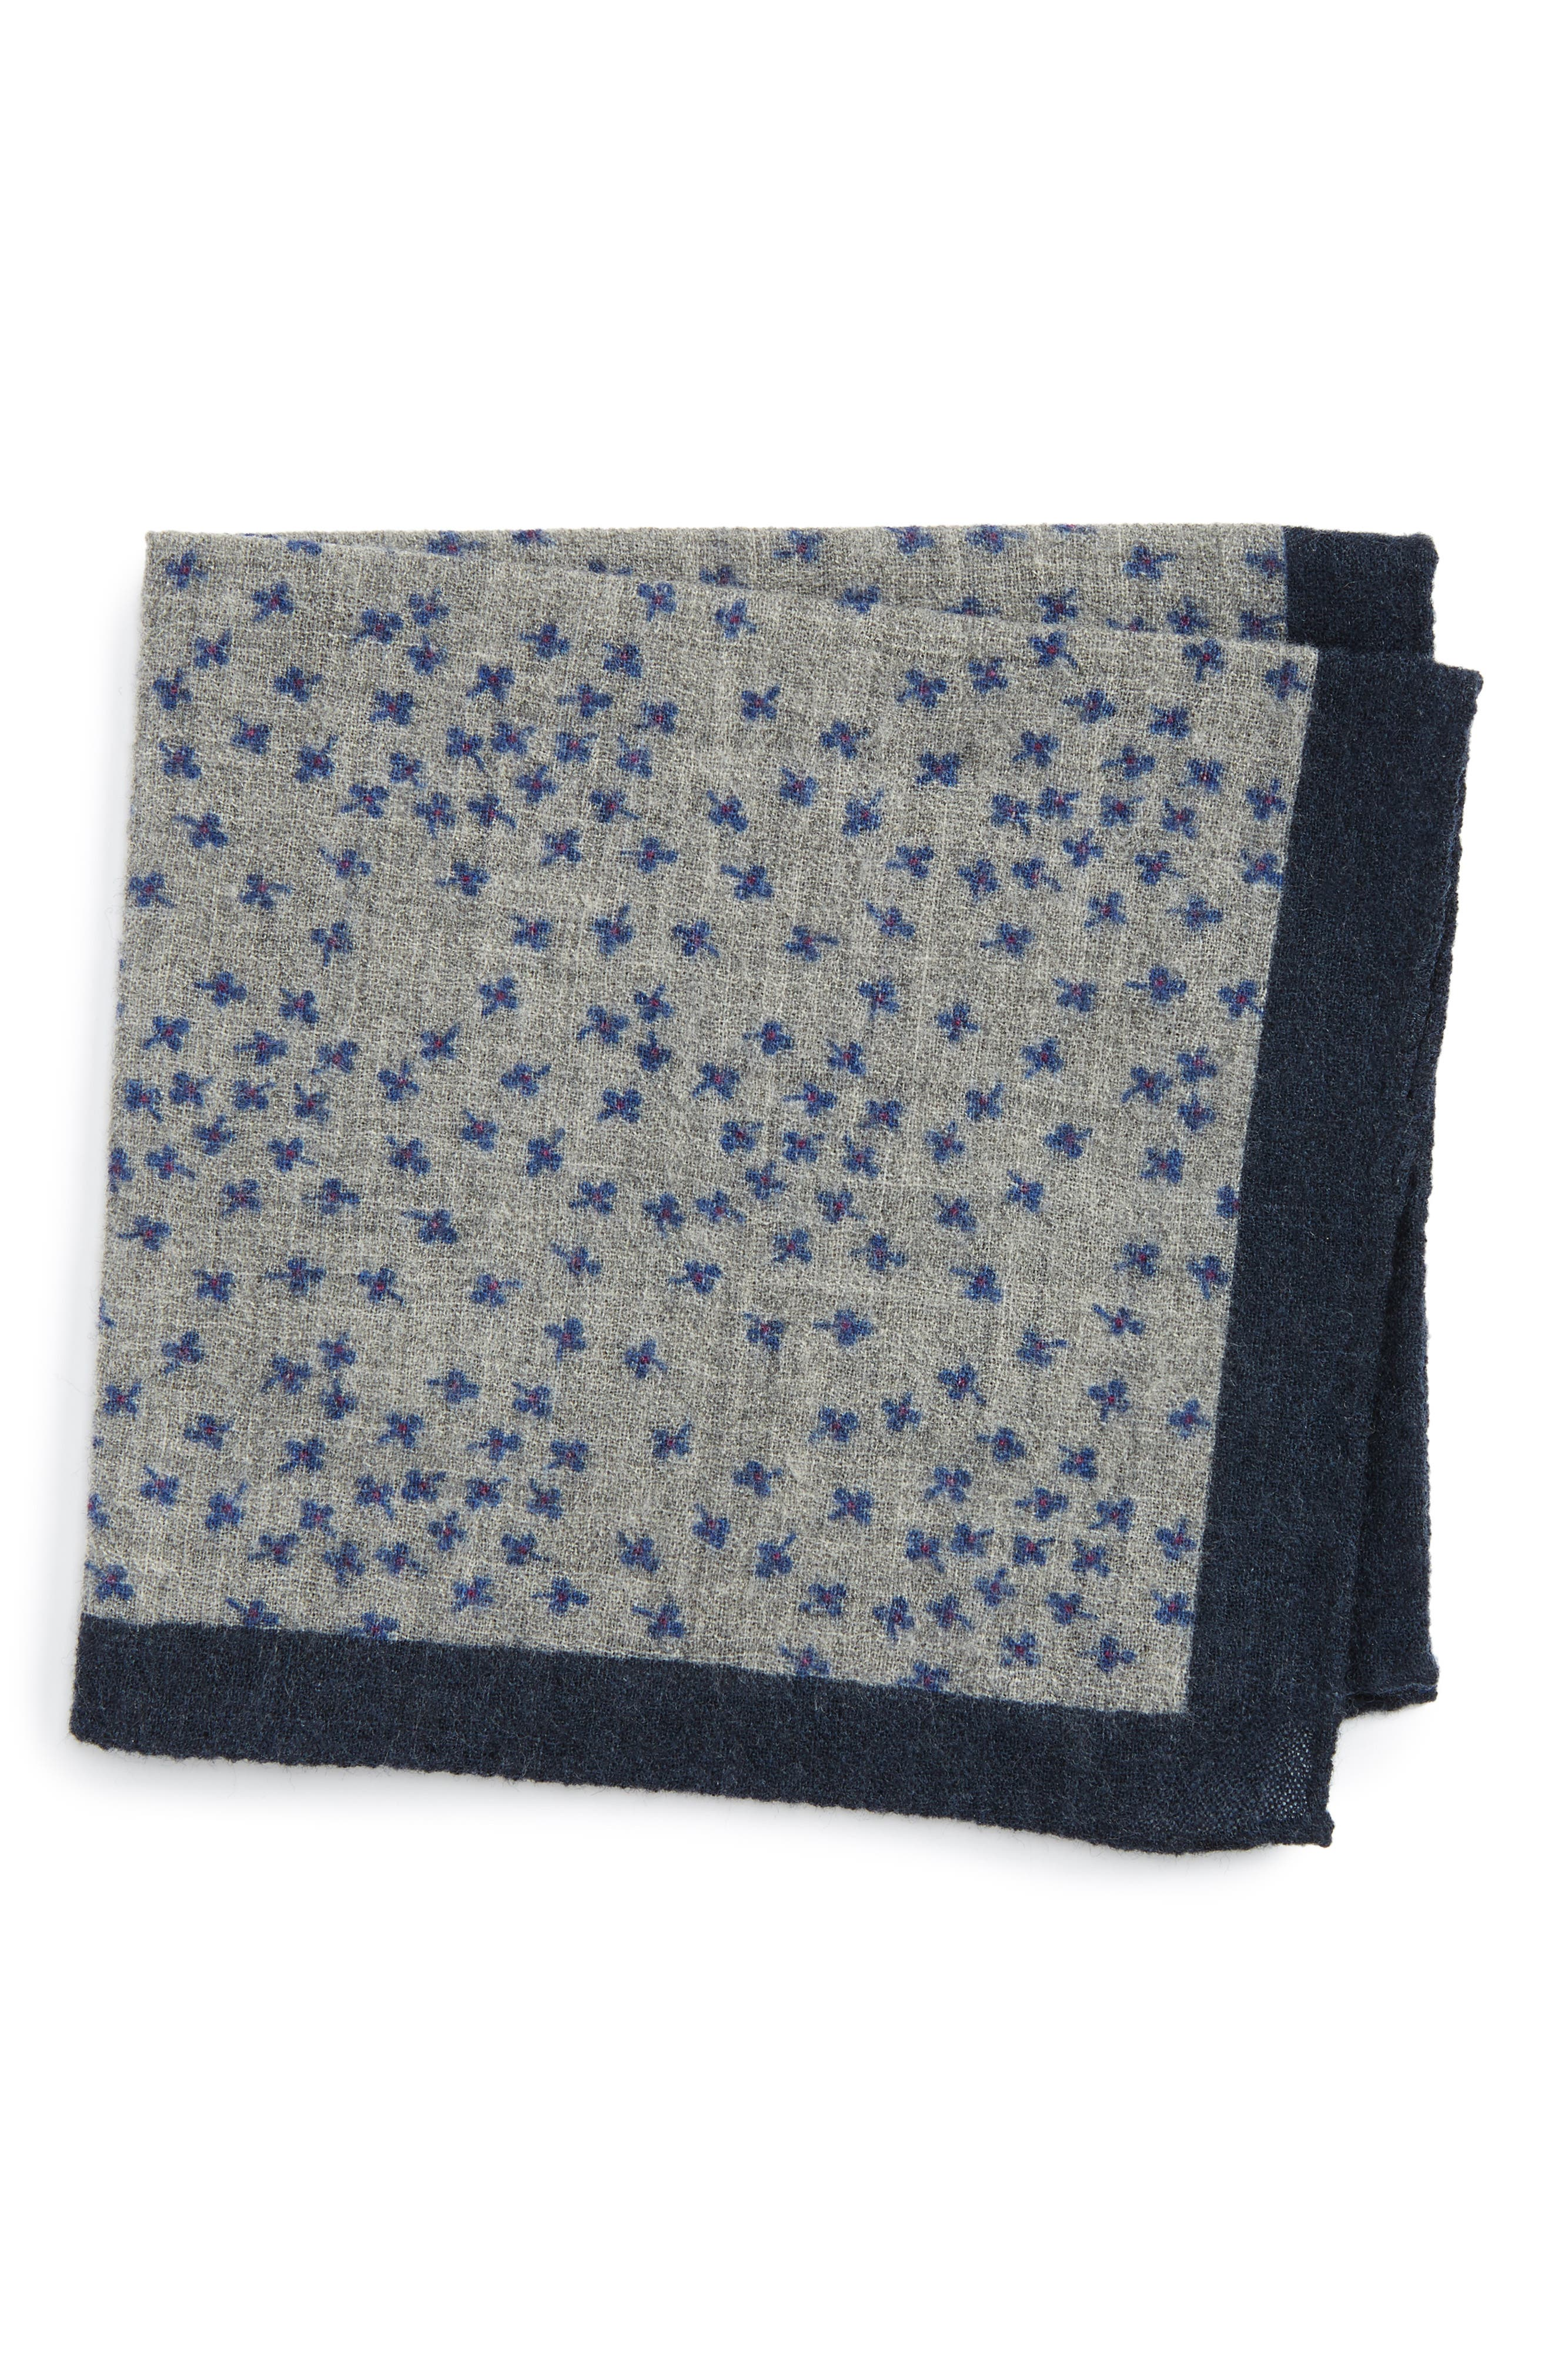 Patterned Wool Pocket Square,                         Main,                         color, 020